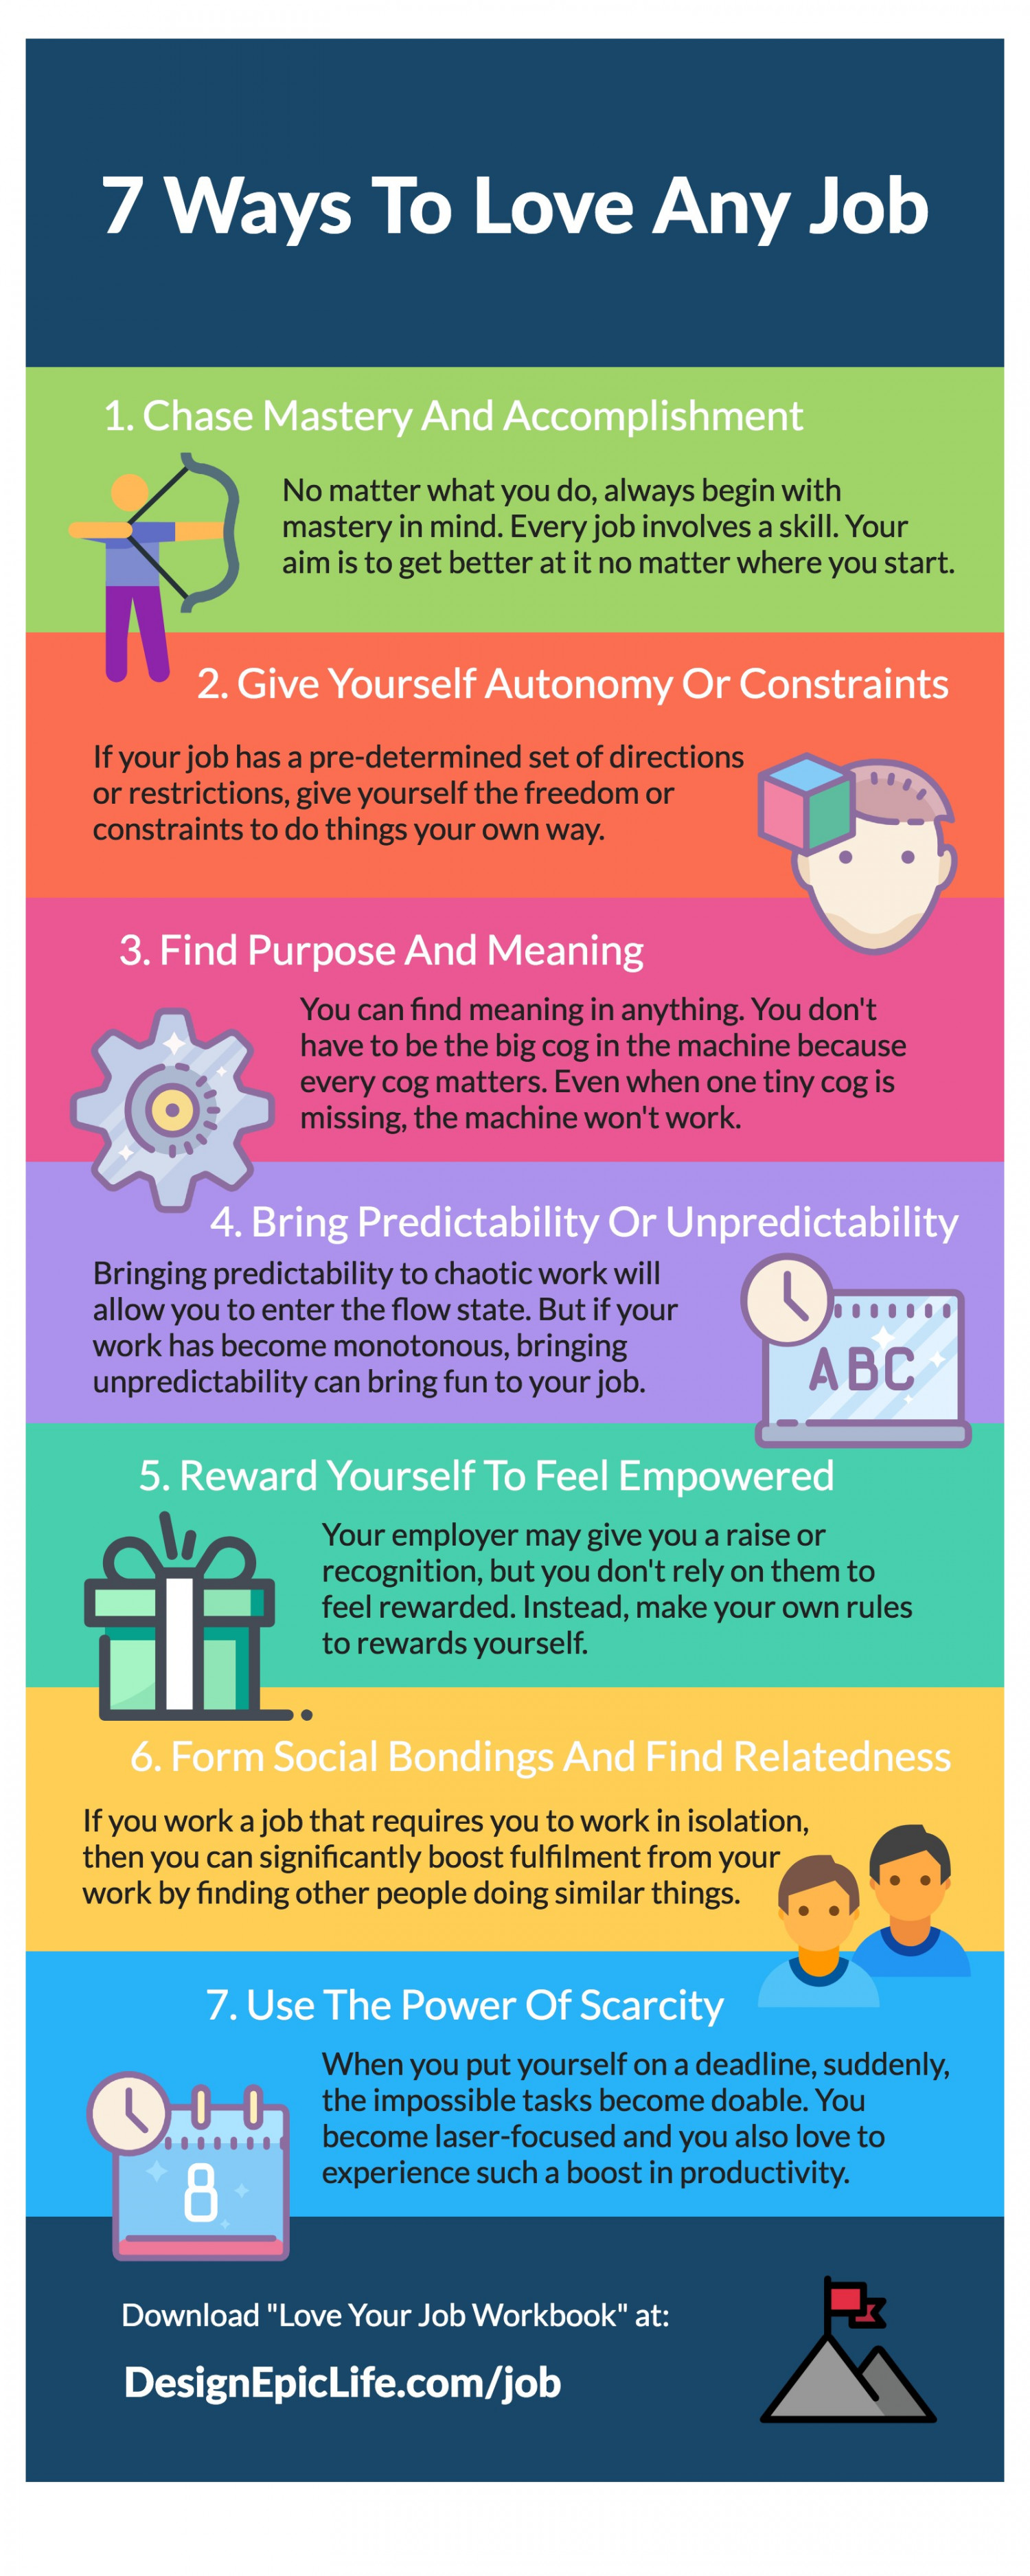 7 Ways To Love Any Job Infographic